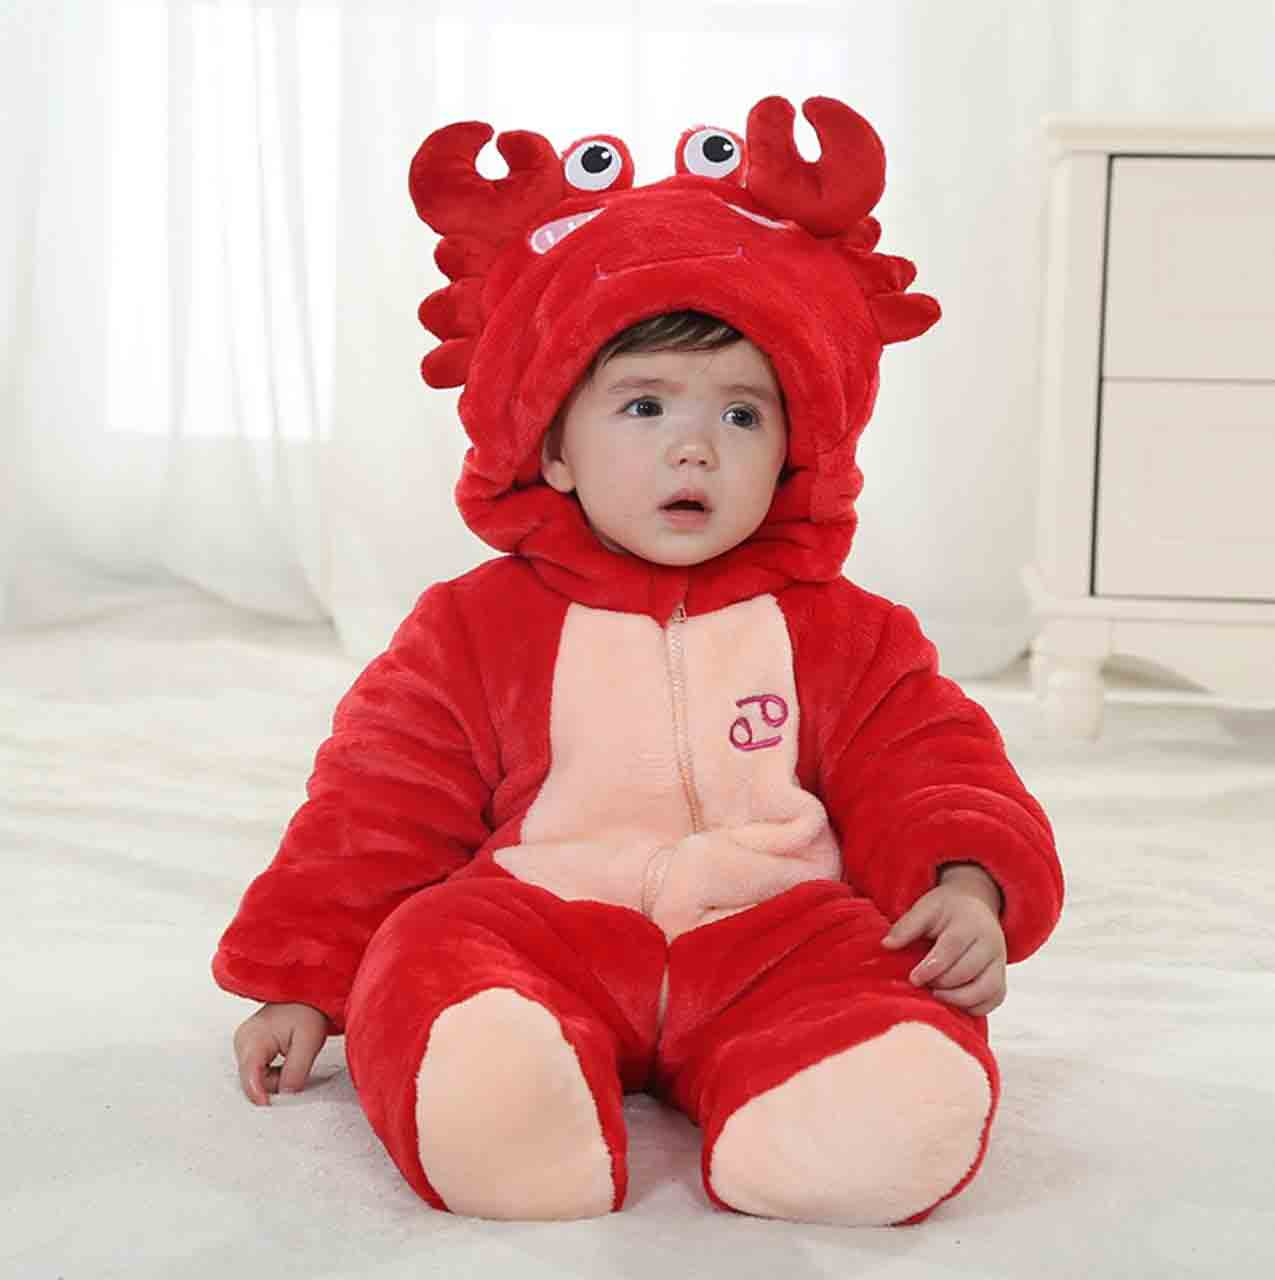 High quality newborn baby clothes including cute newborn baby outfits, precious baby gowns, cute baby dresses, take me home baby clothes, ruffled baby bloomers, personalized diaper covers, & more! Newborn Baby Clothes There are products.